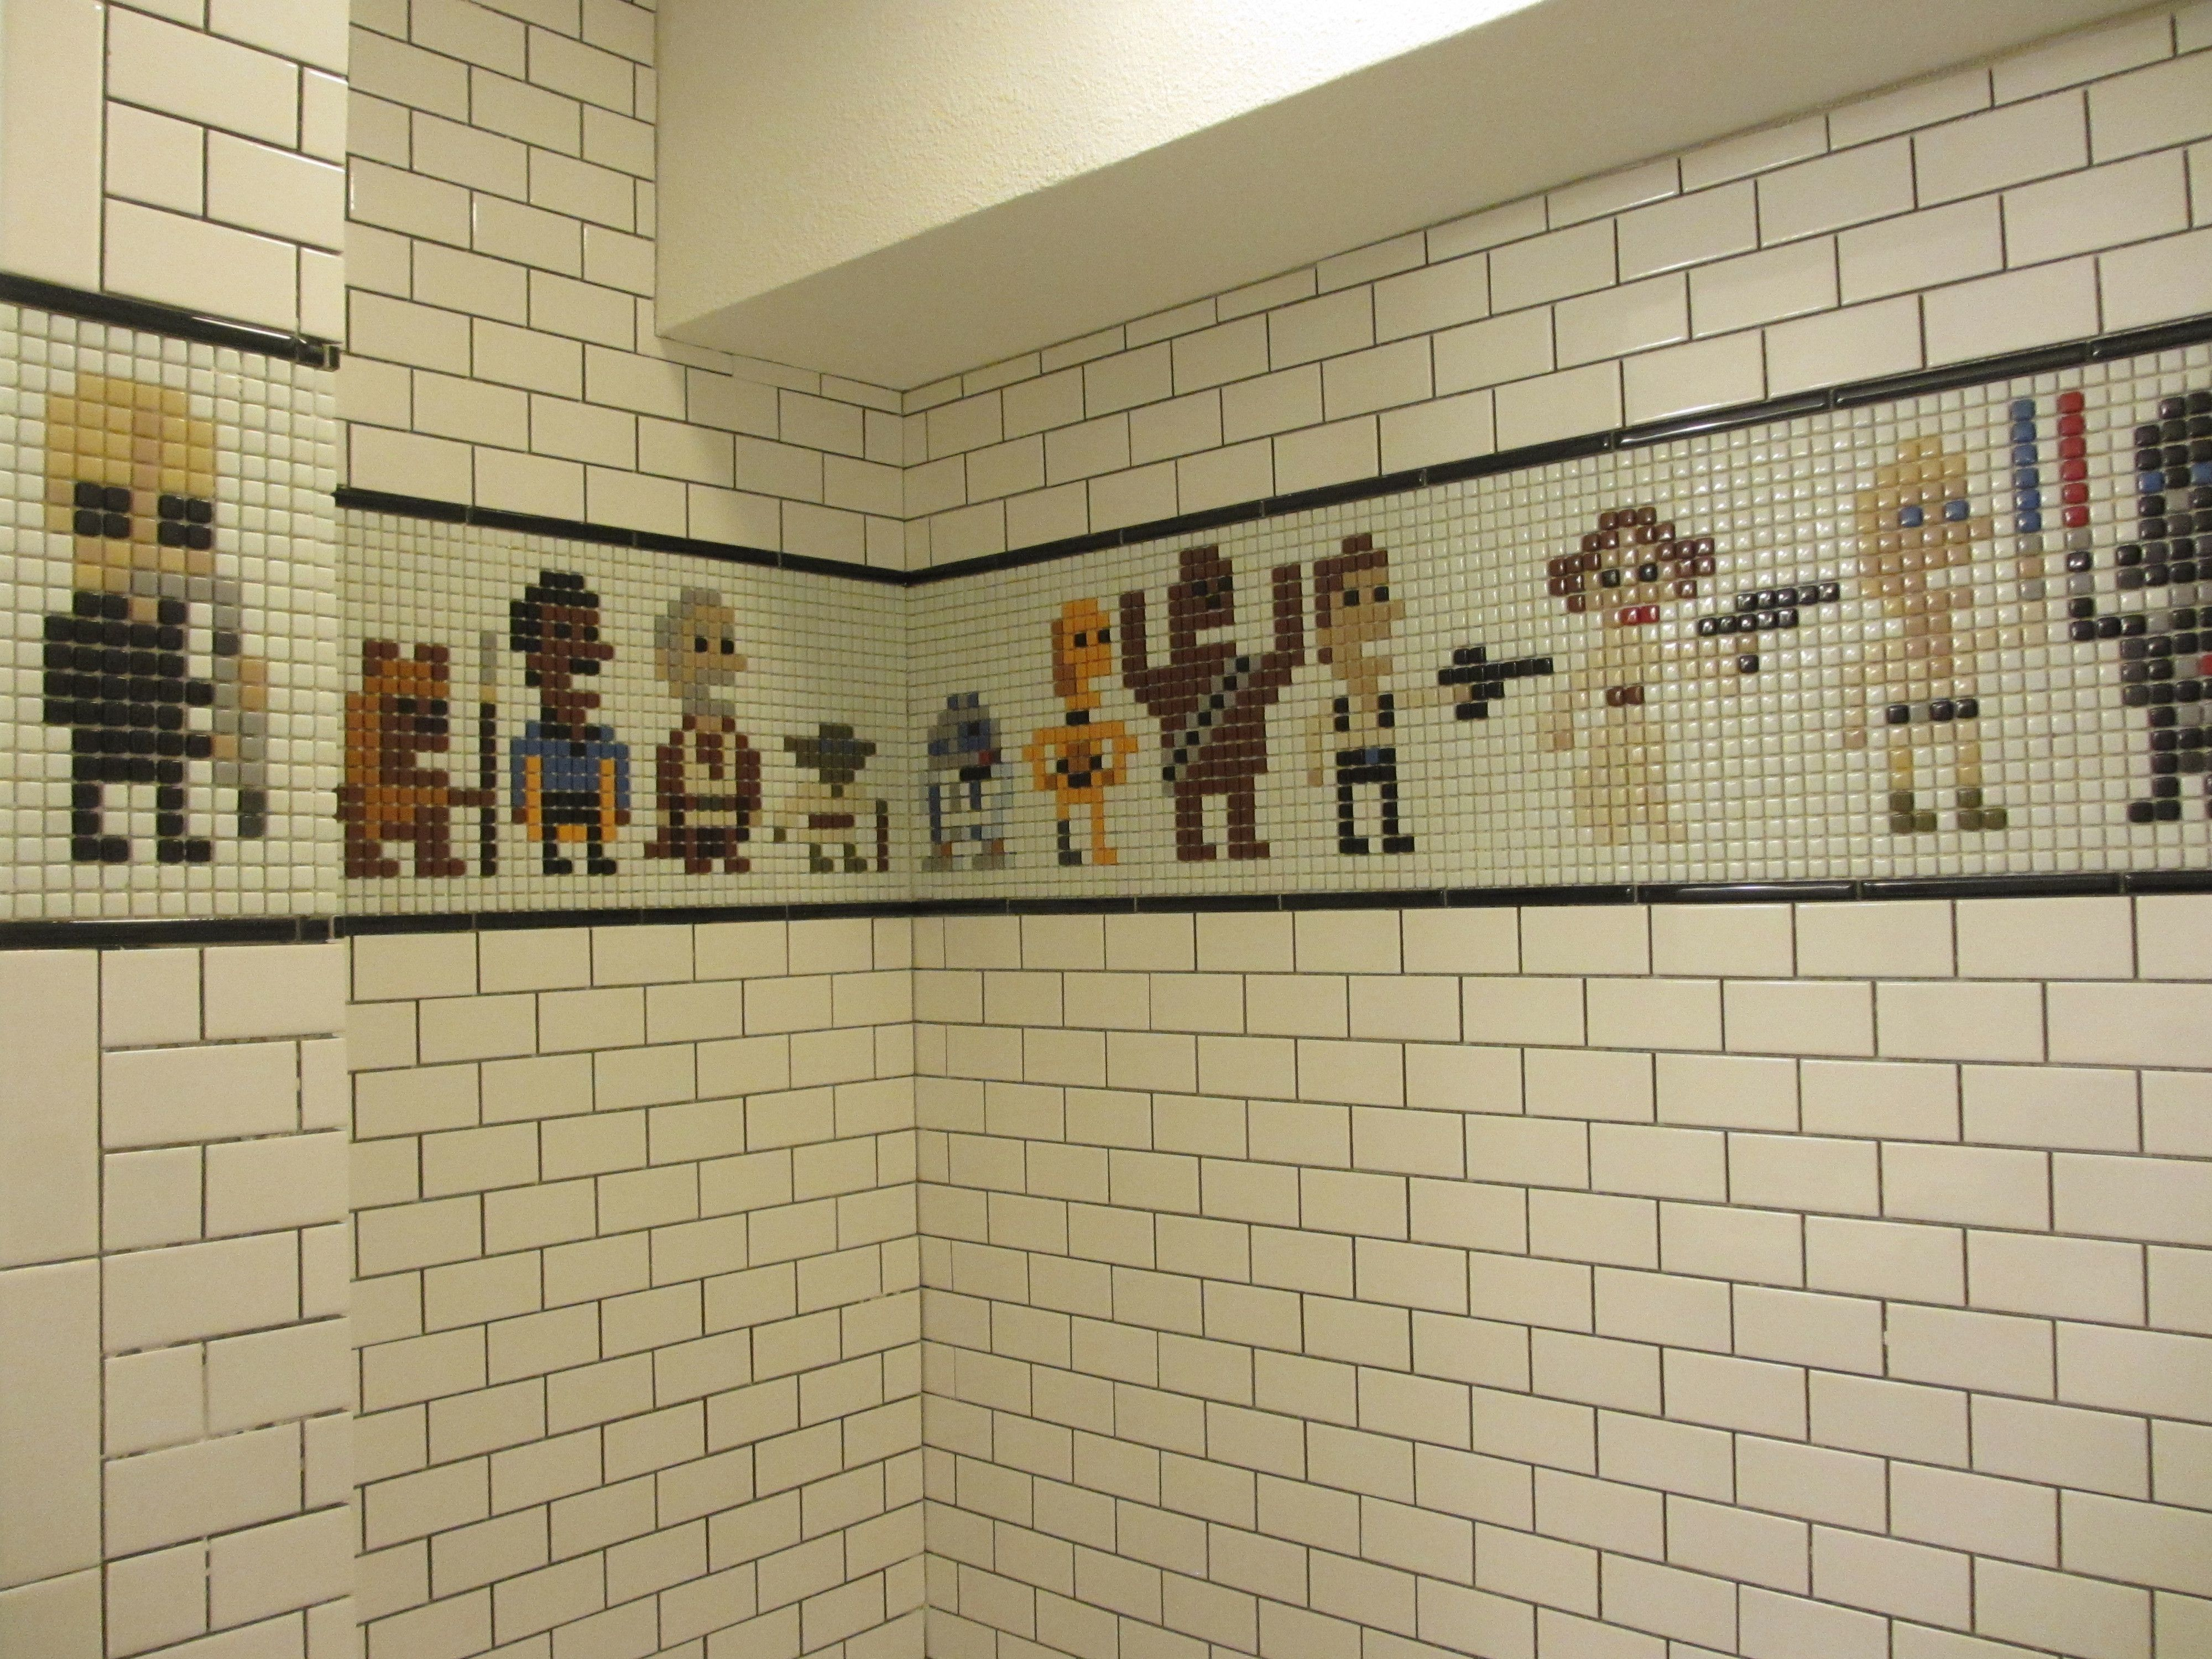 The Force Is Strong With This One This Bathroom Remodel Features Pixel Art In The Shower Great Diy Projec Star Wars Bathroom Star Wars Decor Star Wars Design